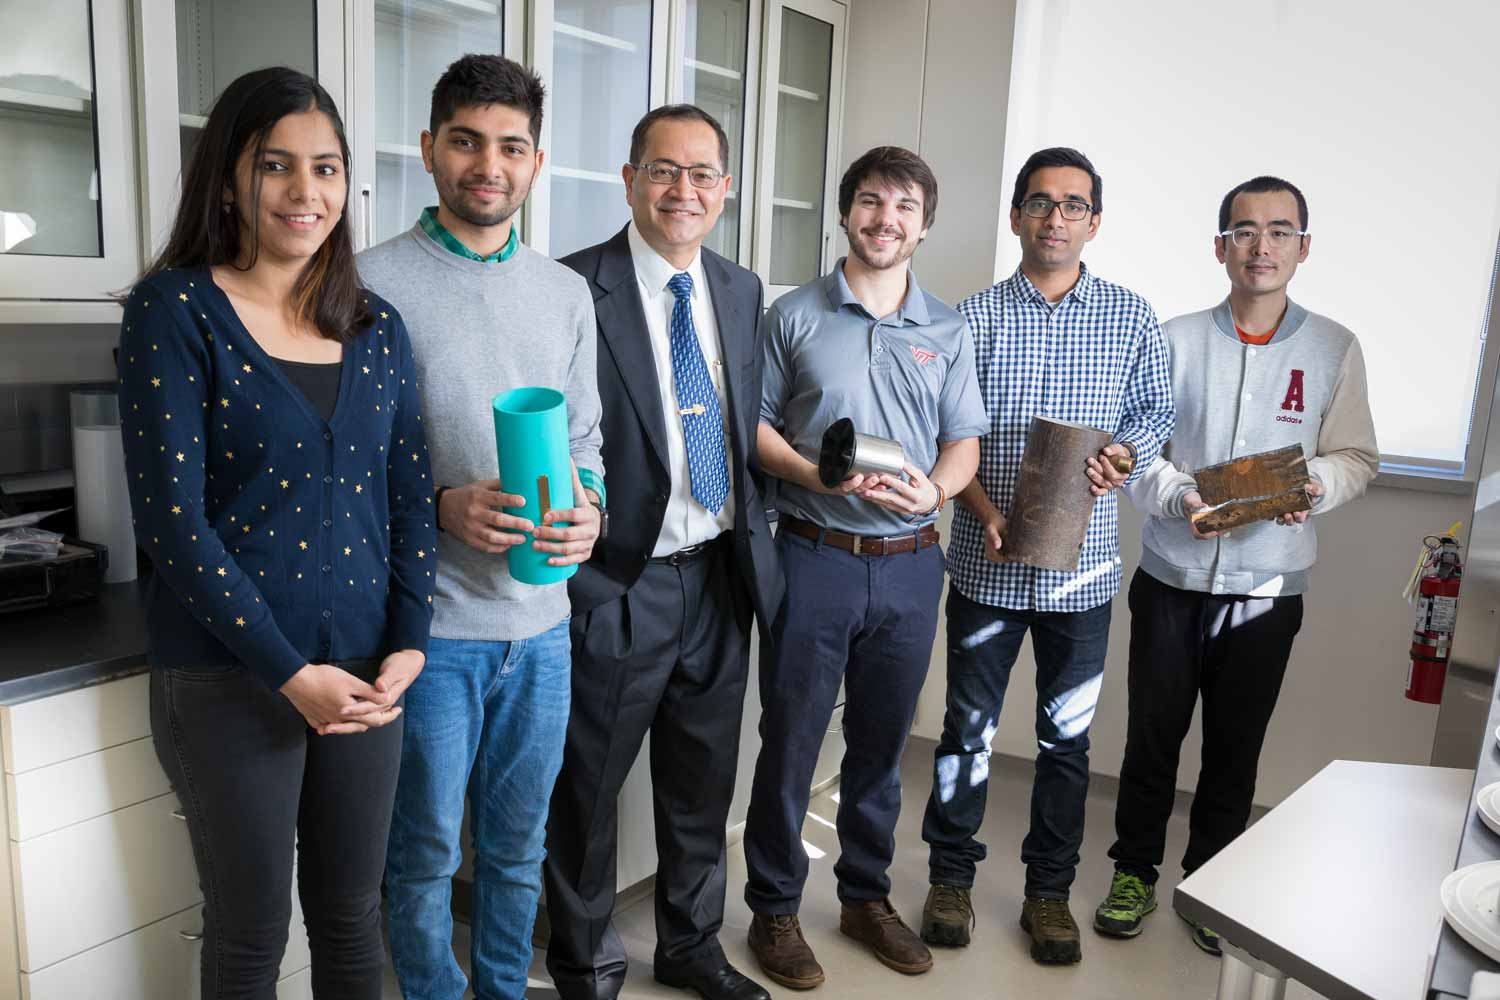 Sunhil Sinha and his research students